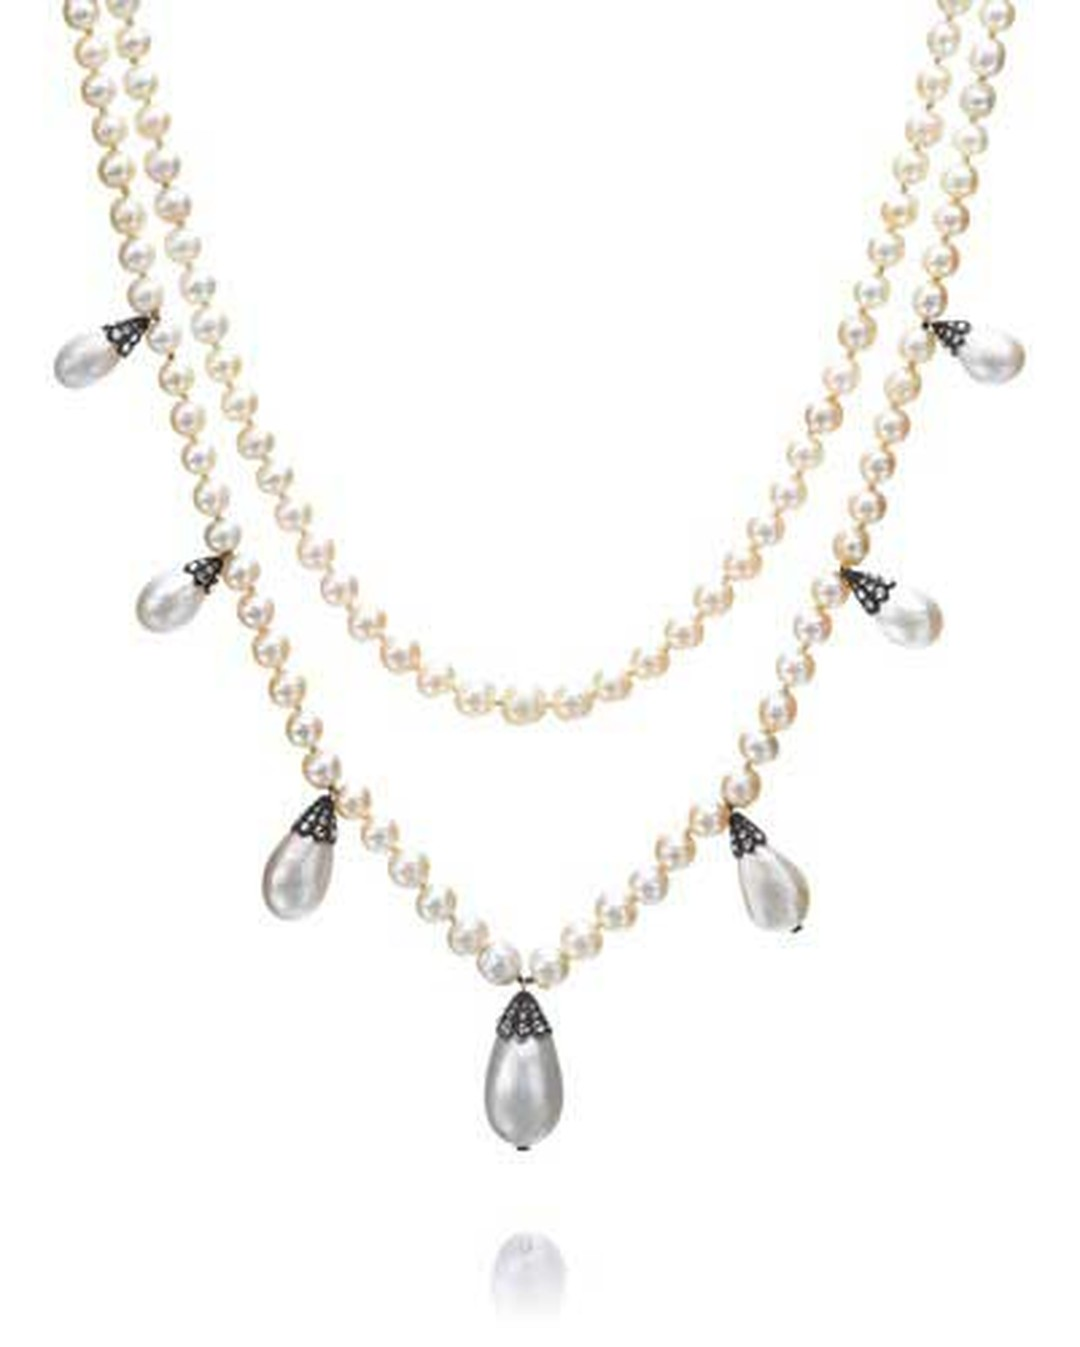 Another highlight of Sotheby's Magnificent and Noble Jewels auction in Geneva was a natural pearl and diamond necklace that was owned by Joséphine de Beauharnais (1807-1876). The necklace sold for $3.43 million, more than doubling its pre-sale estimate.